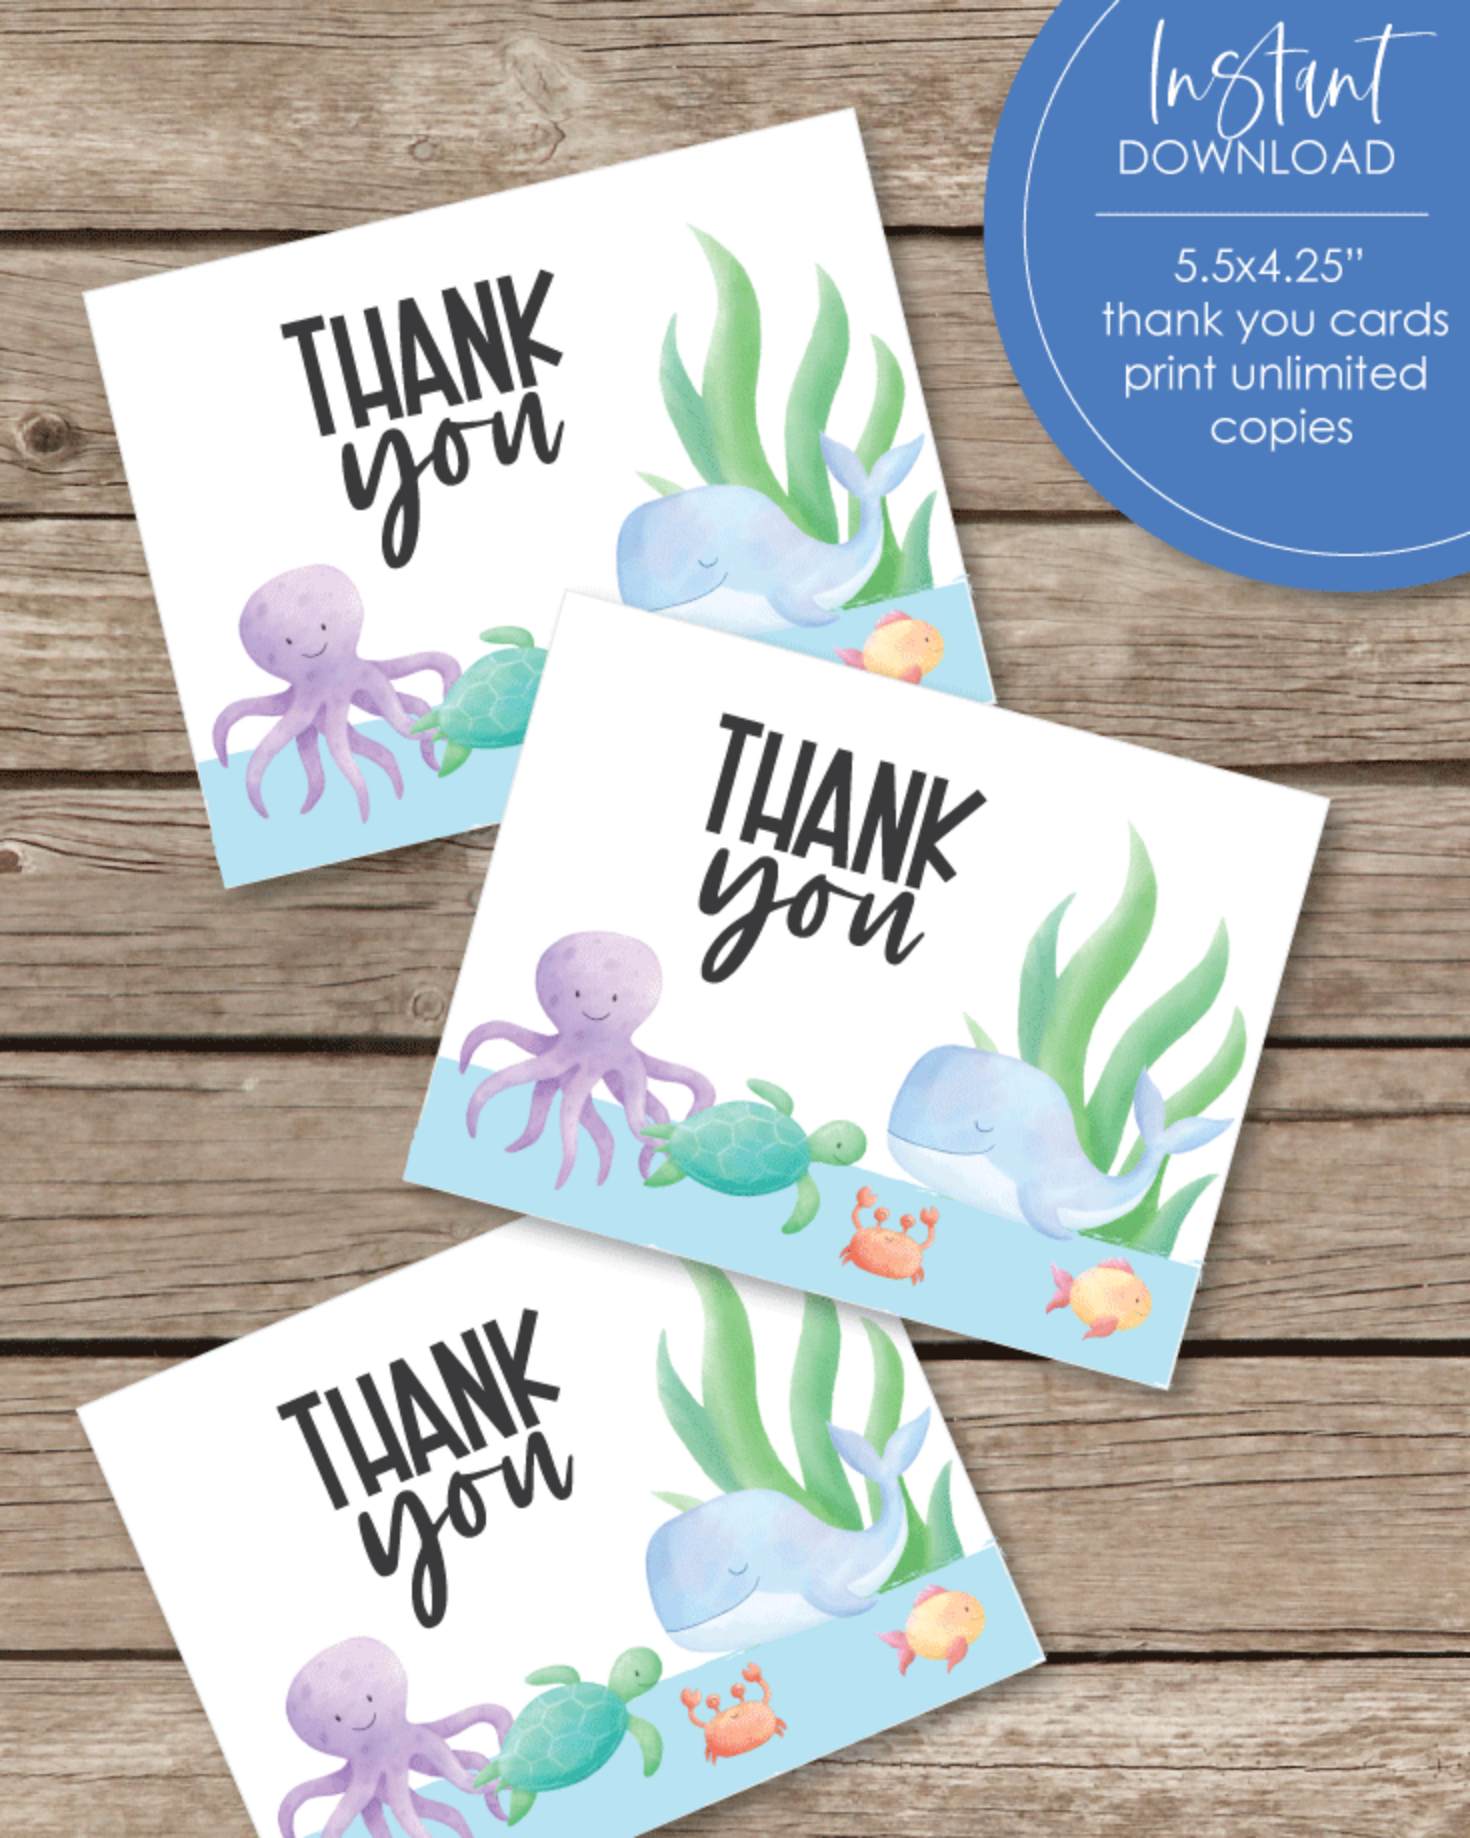 Printable Thank You Card - Under The Sea, Sea Creature Theme - 5.5 x 4.25